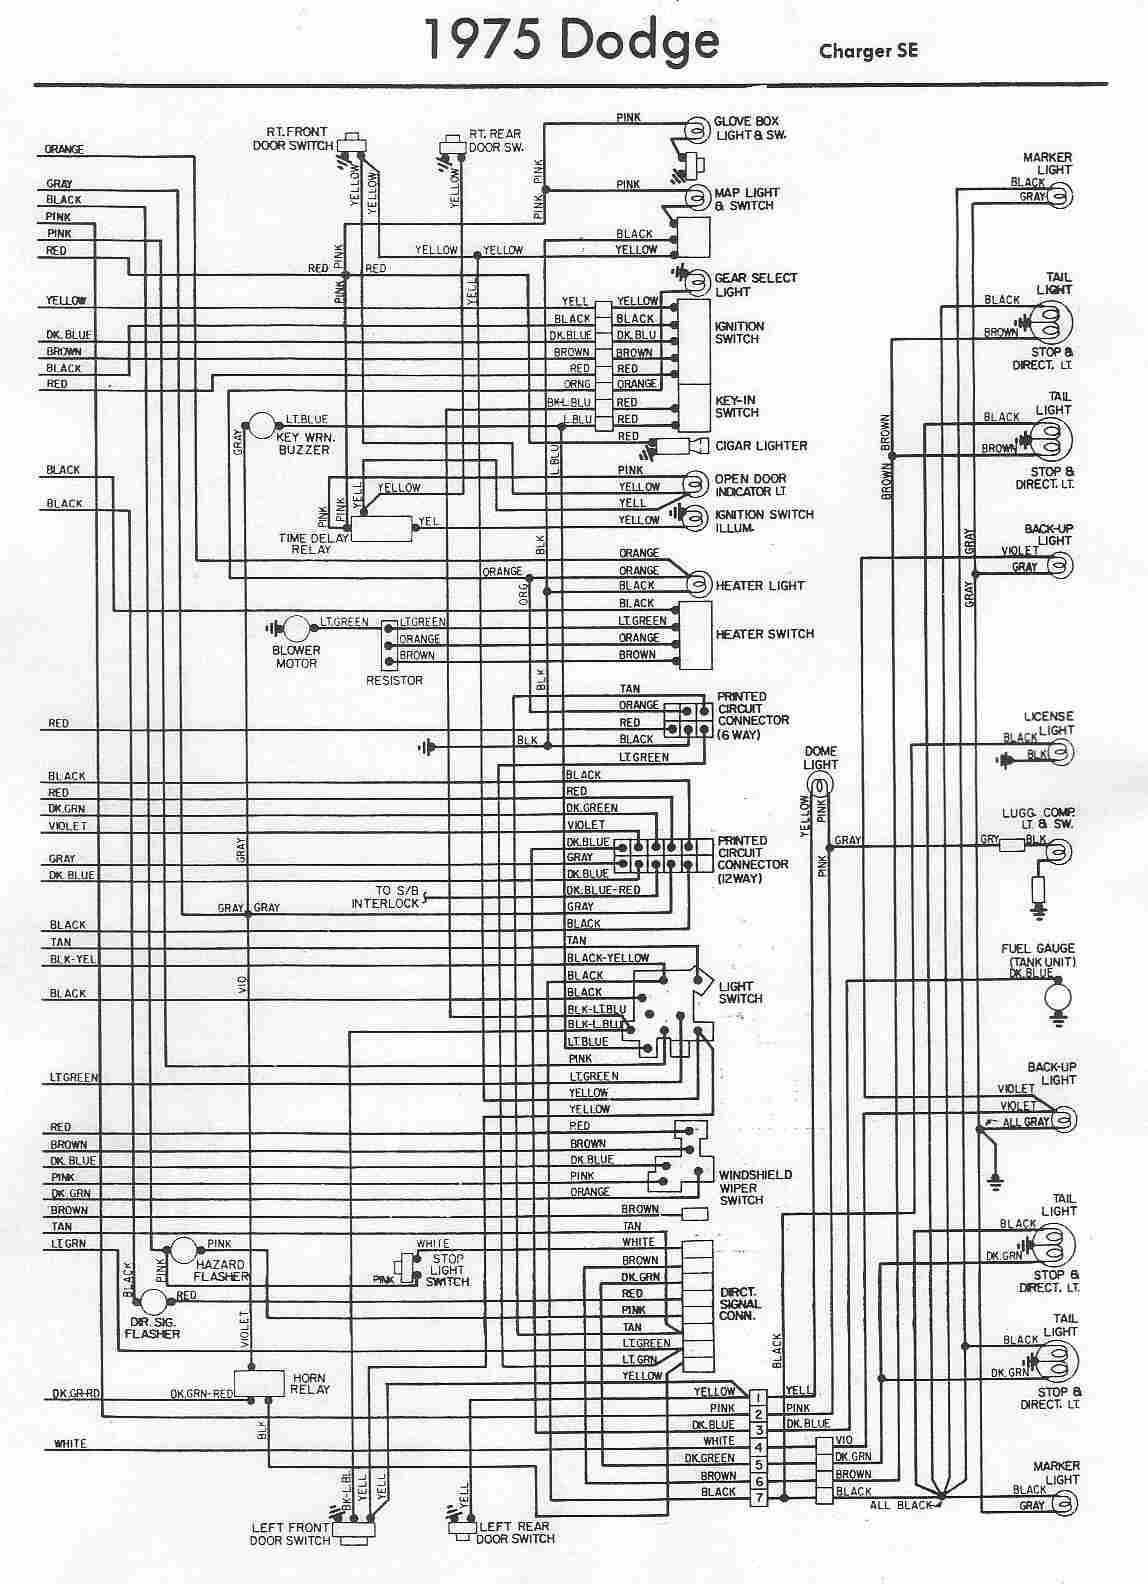 Dodge Car Manuals Wiring Diagrams Pdf Fault Codes Charger Police Diagram Download